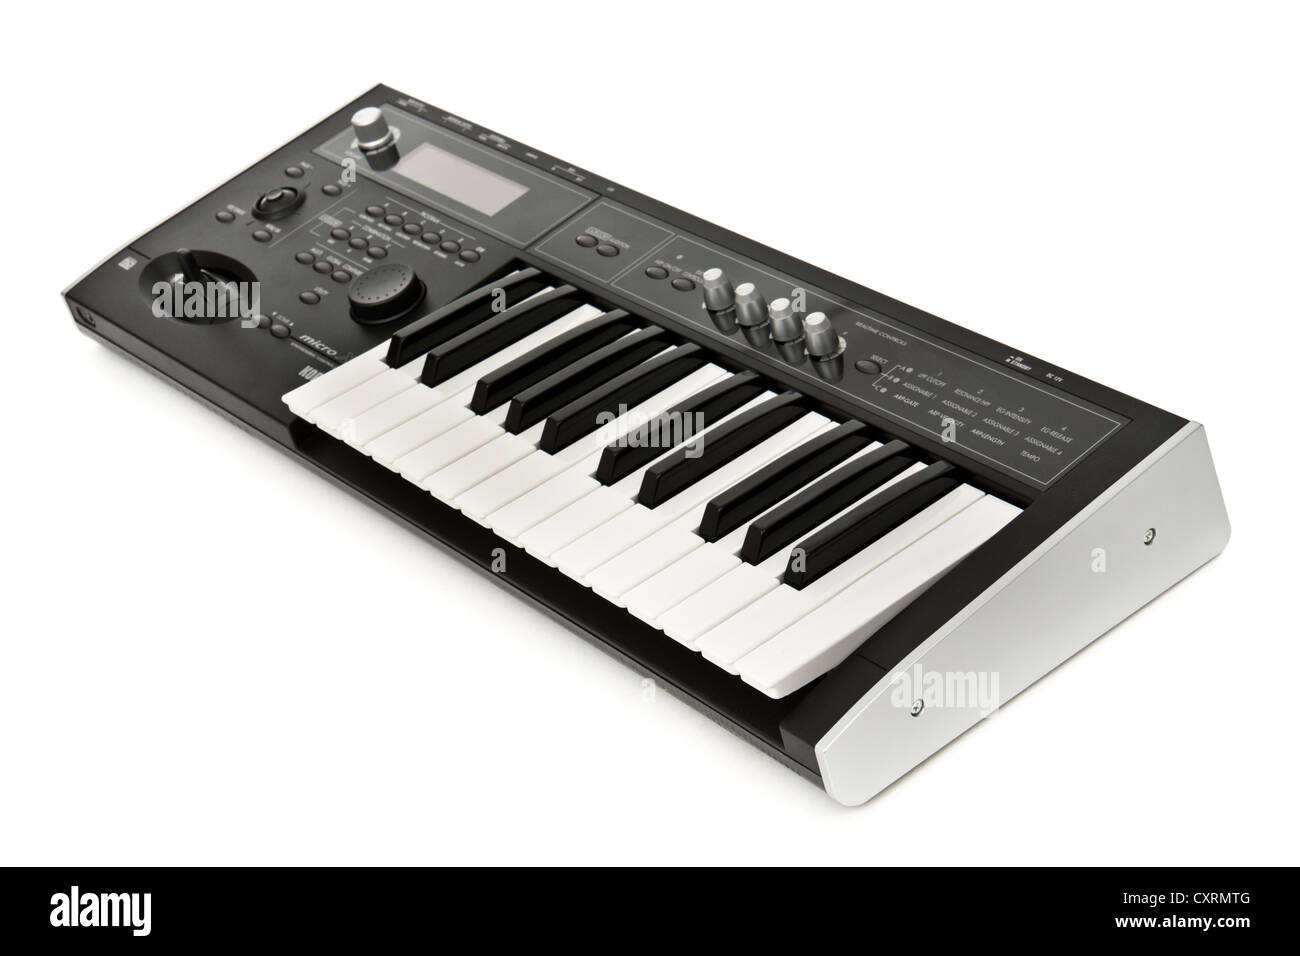 2006 Korg Micro X portable 25-key music synthesizer / controller - Stock Image